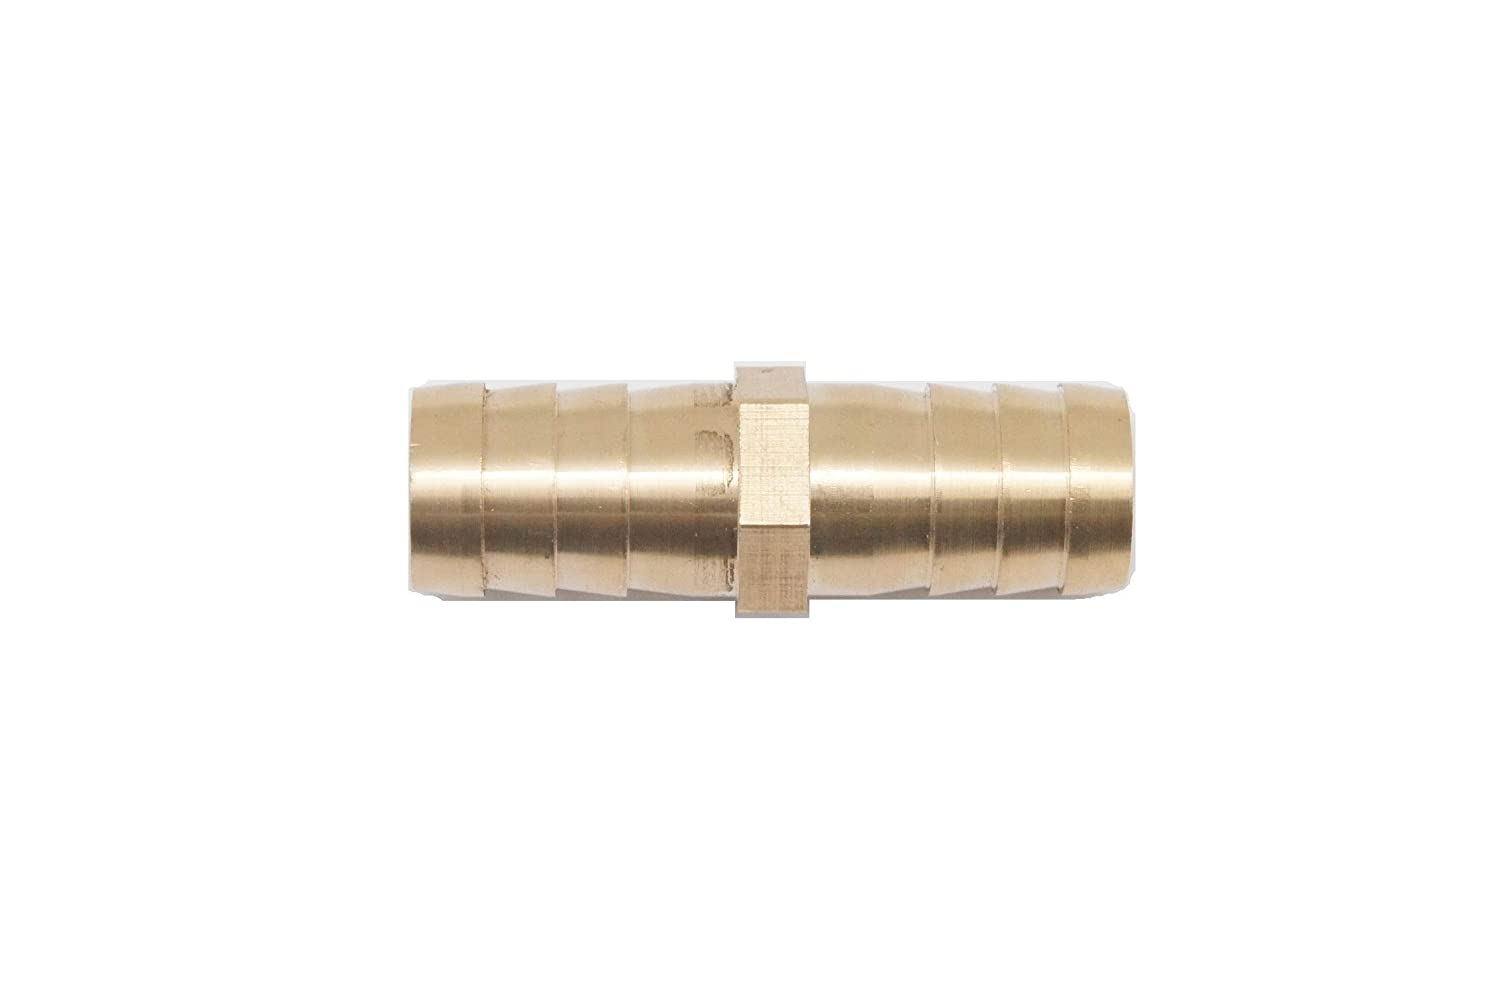 Autobahn88 Straight Brass Copper Vacuum Hose Joiner Barbed Coupler Connector 3//8 OD=10mm Pack of 2